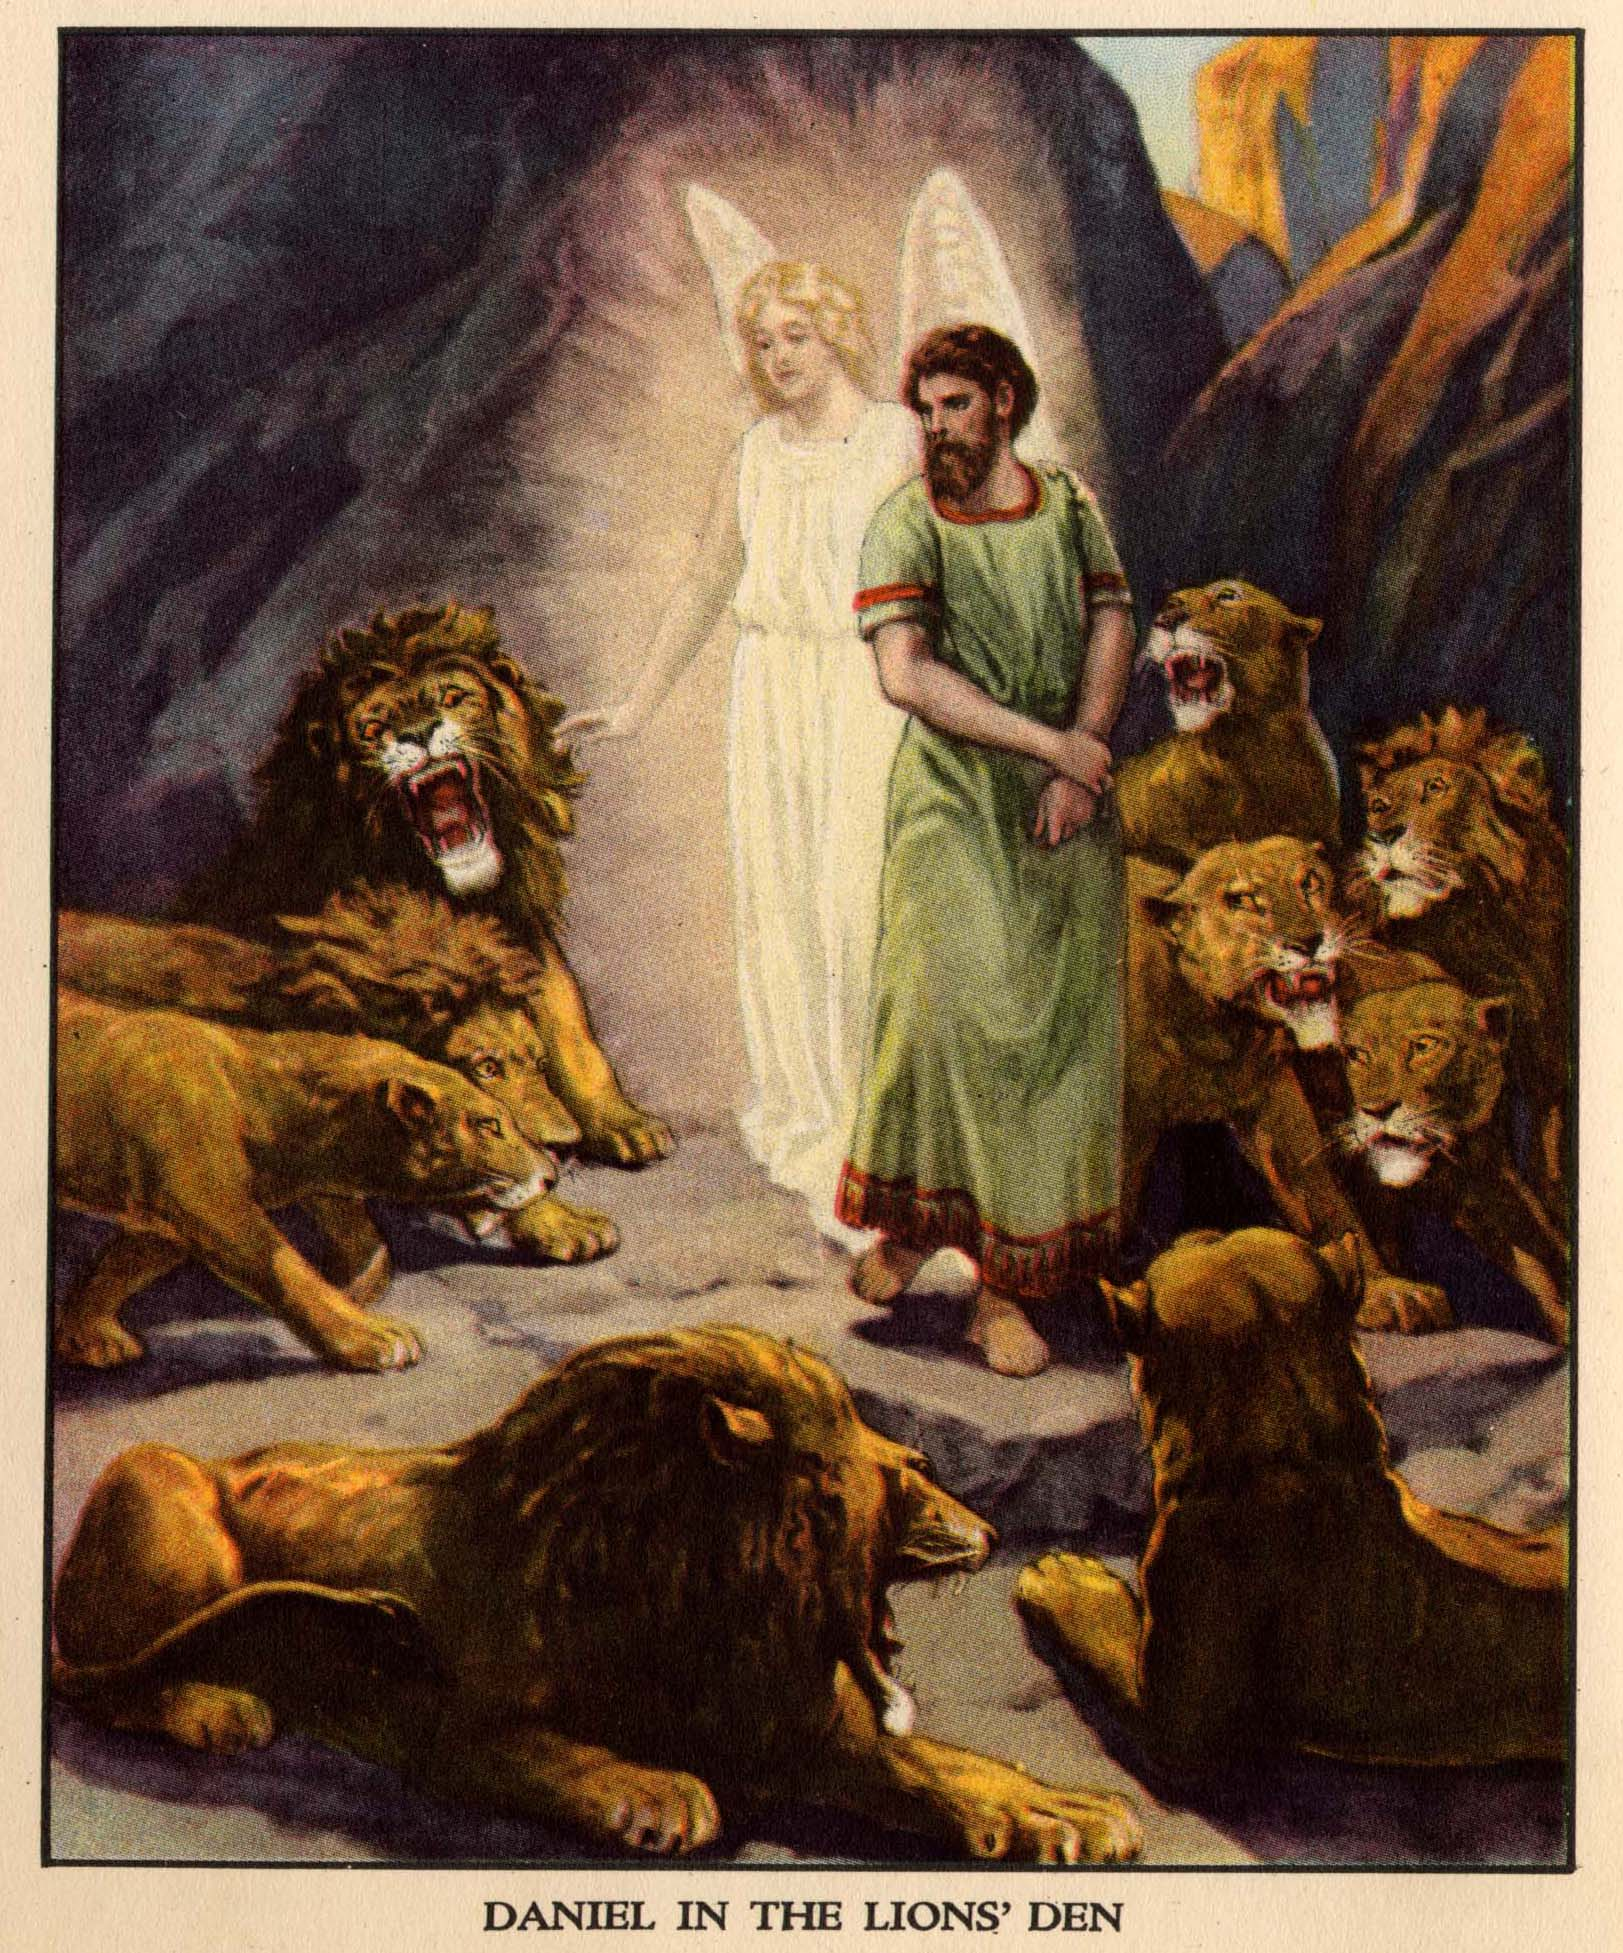 The Book of Daniel interprets the Book of Revelation